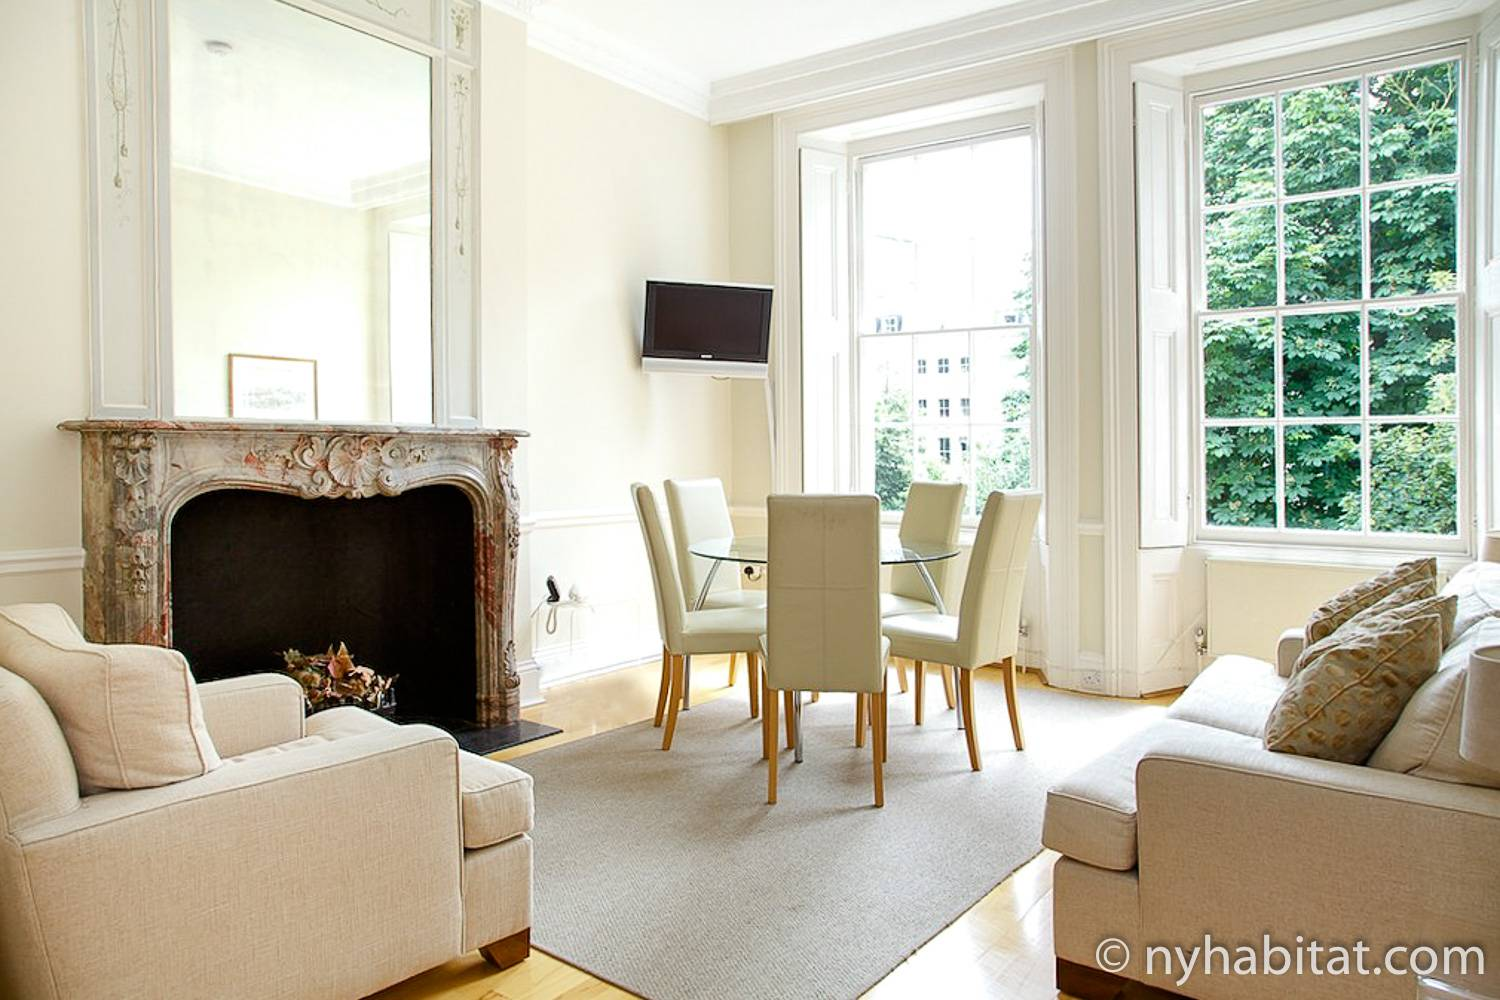 Image of the living room of vacation rental LN-578 in South Kensington, London with a fireplace and comfortable seating.